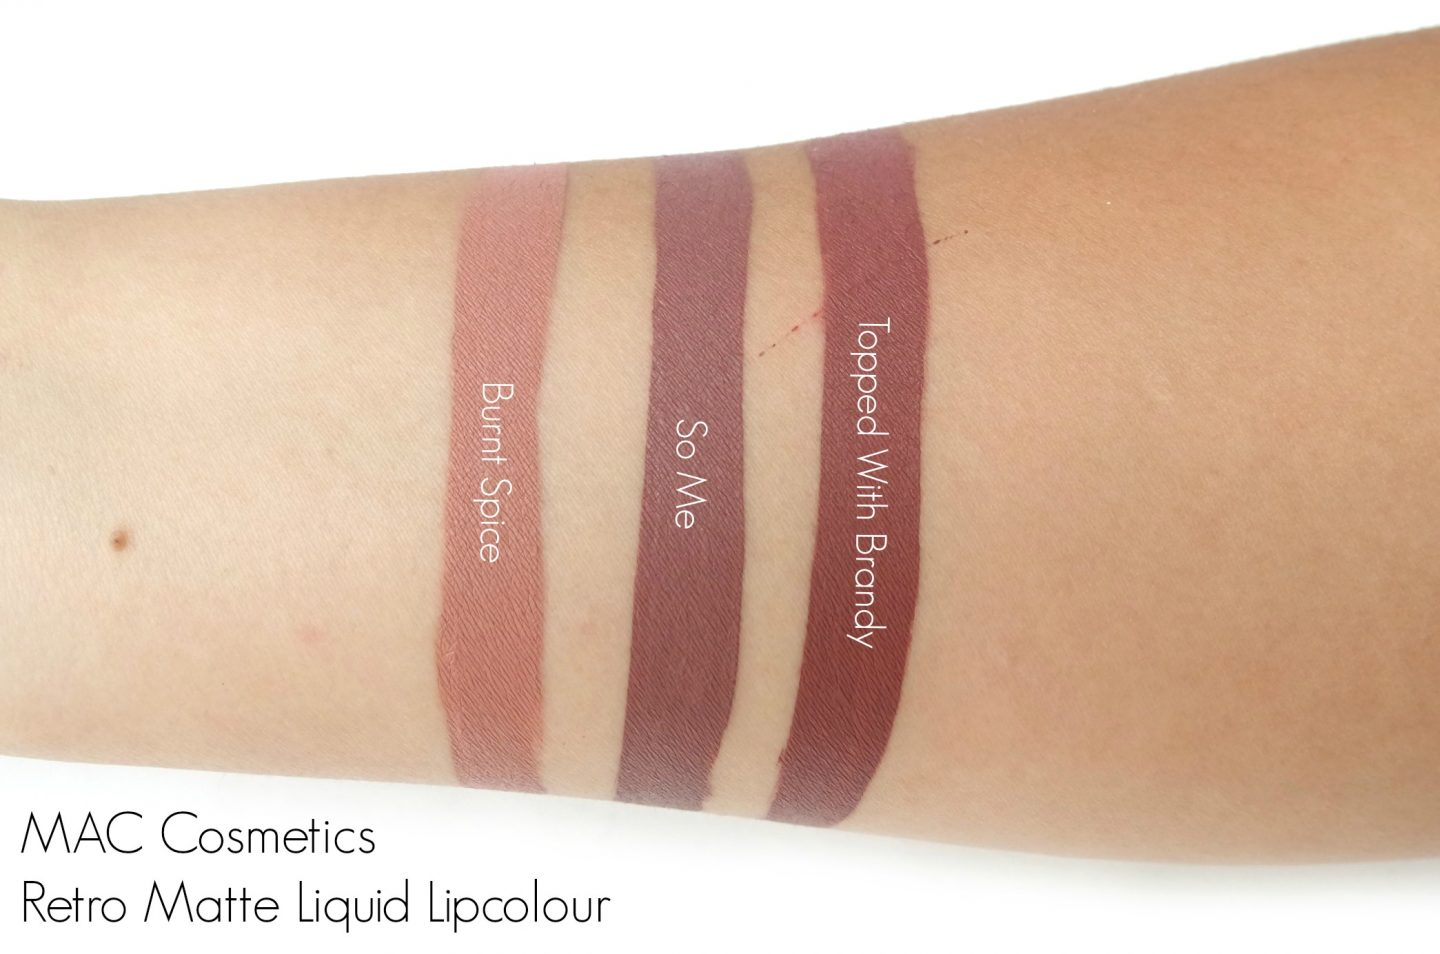 MAC Cosmetics Retro Matte Liquid Lipcolour Swatches